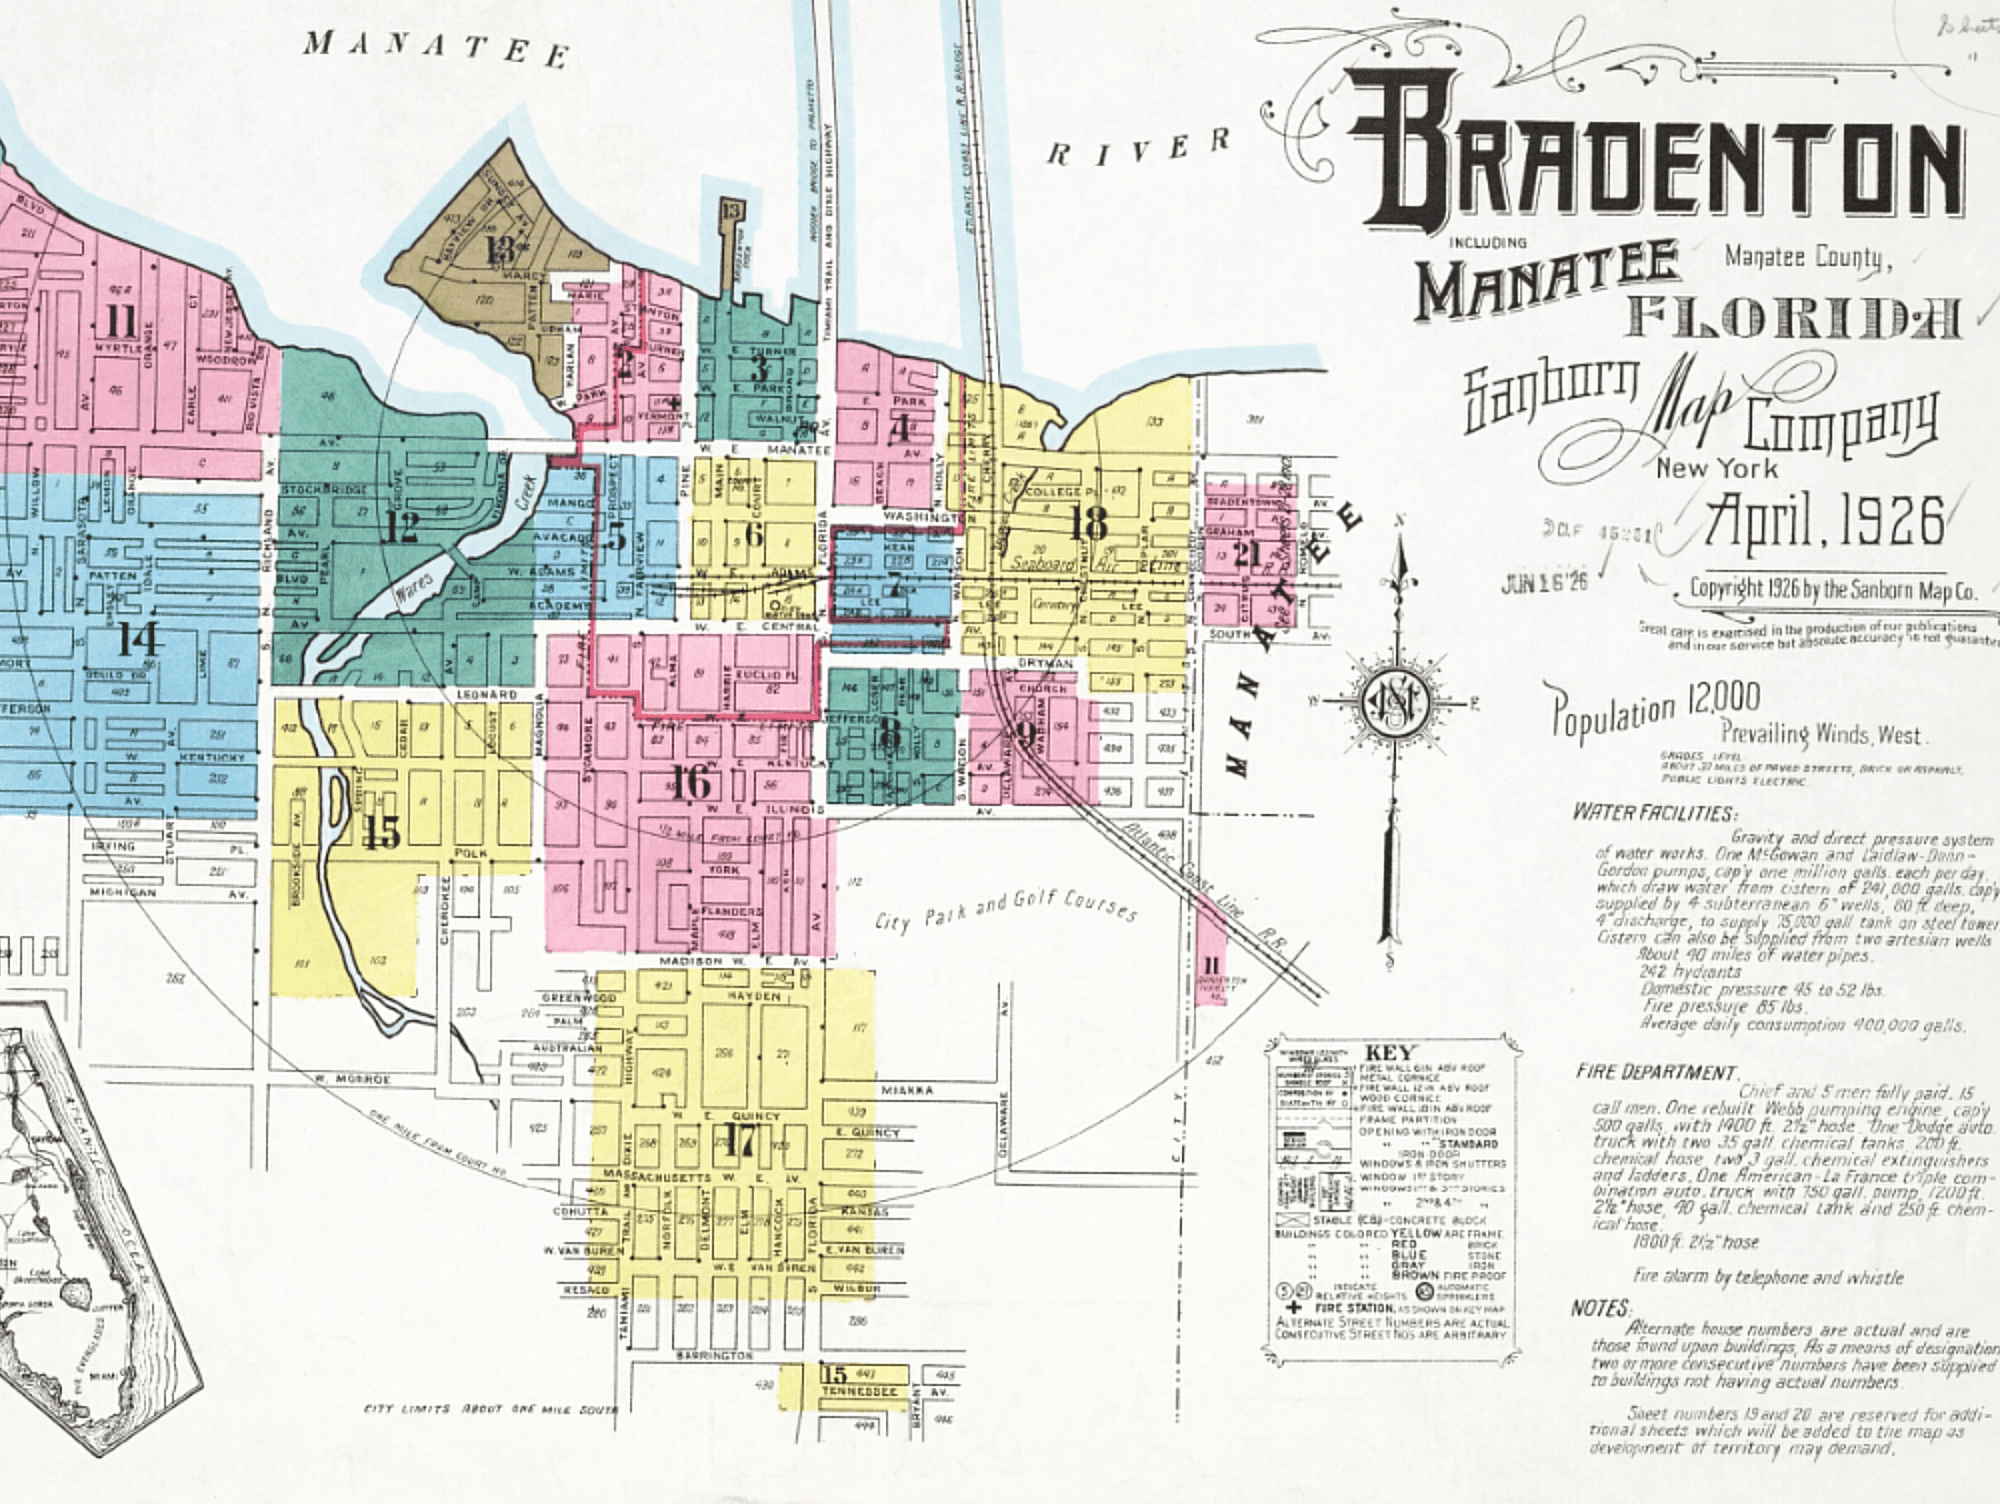 Sanborn Fire Insurance Maps Online: Where to Find on